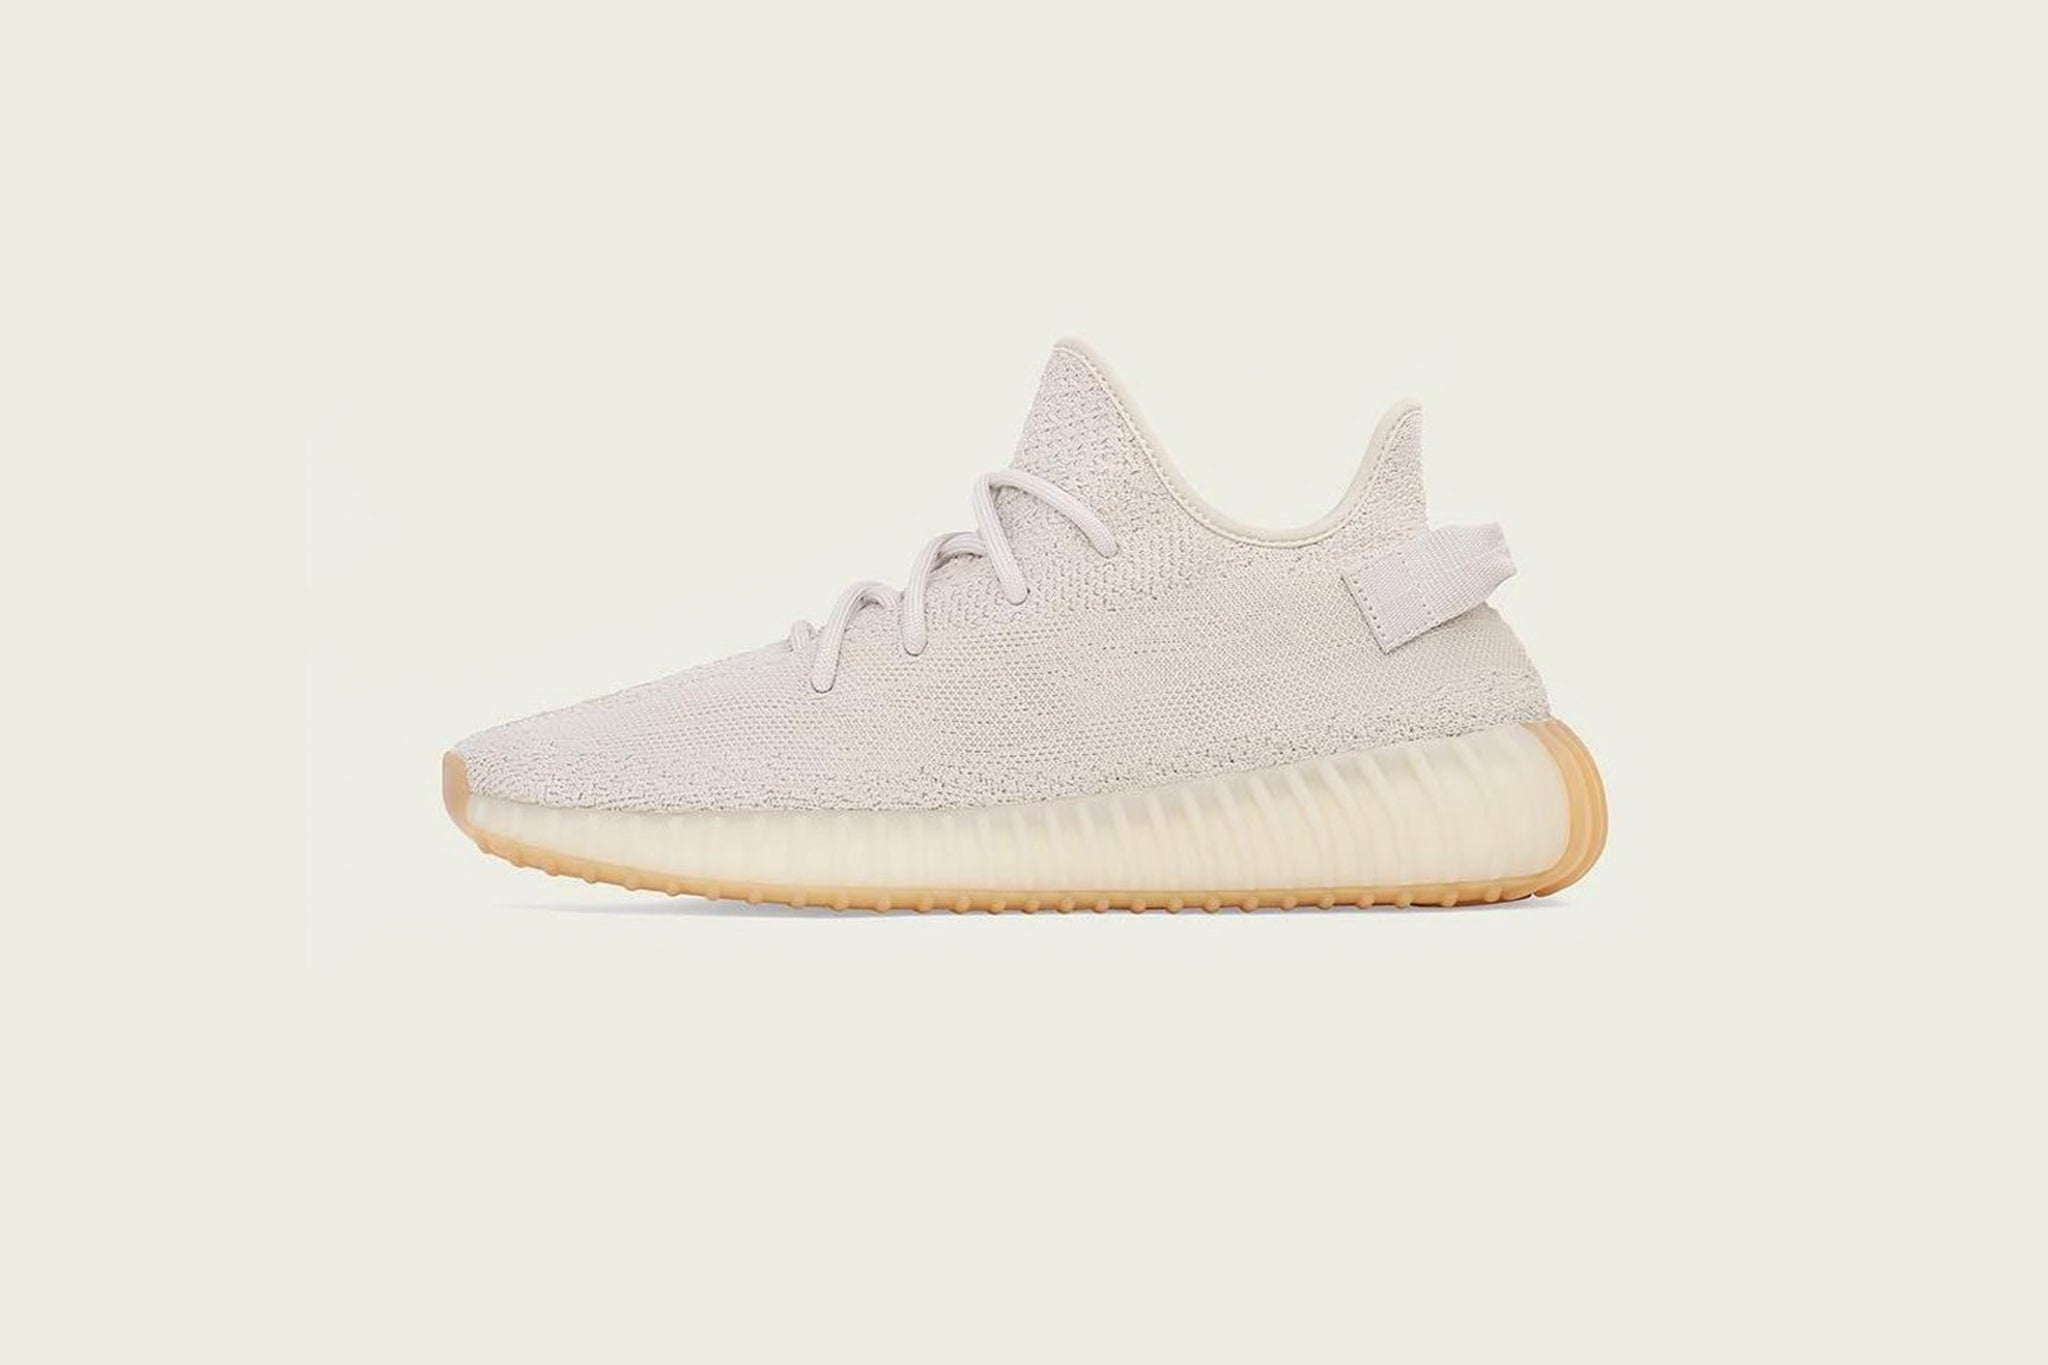 348f24b9dcb55 Available on 11 23 2018 at all locations. We will also be holding a raffle  at all locations on 11 21 2018 from 3PM-7PM. Winners will be notified on  how to ...